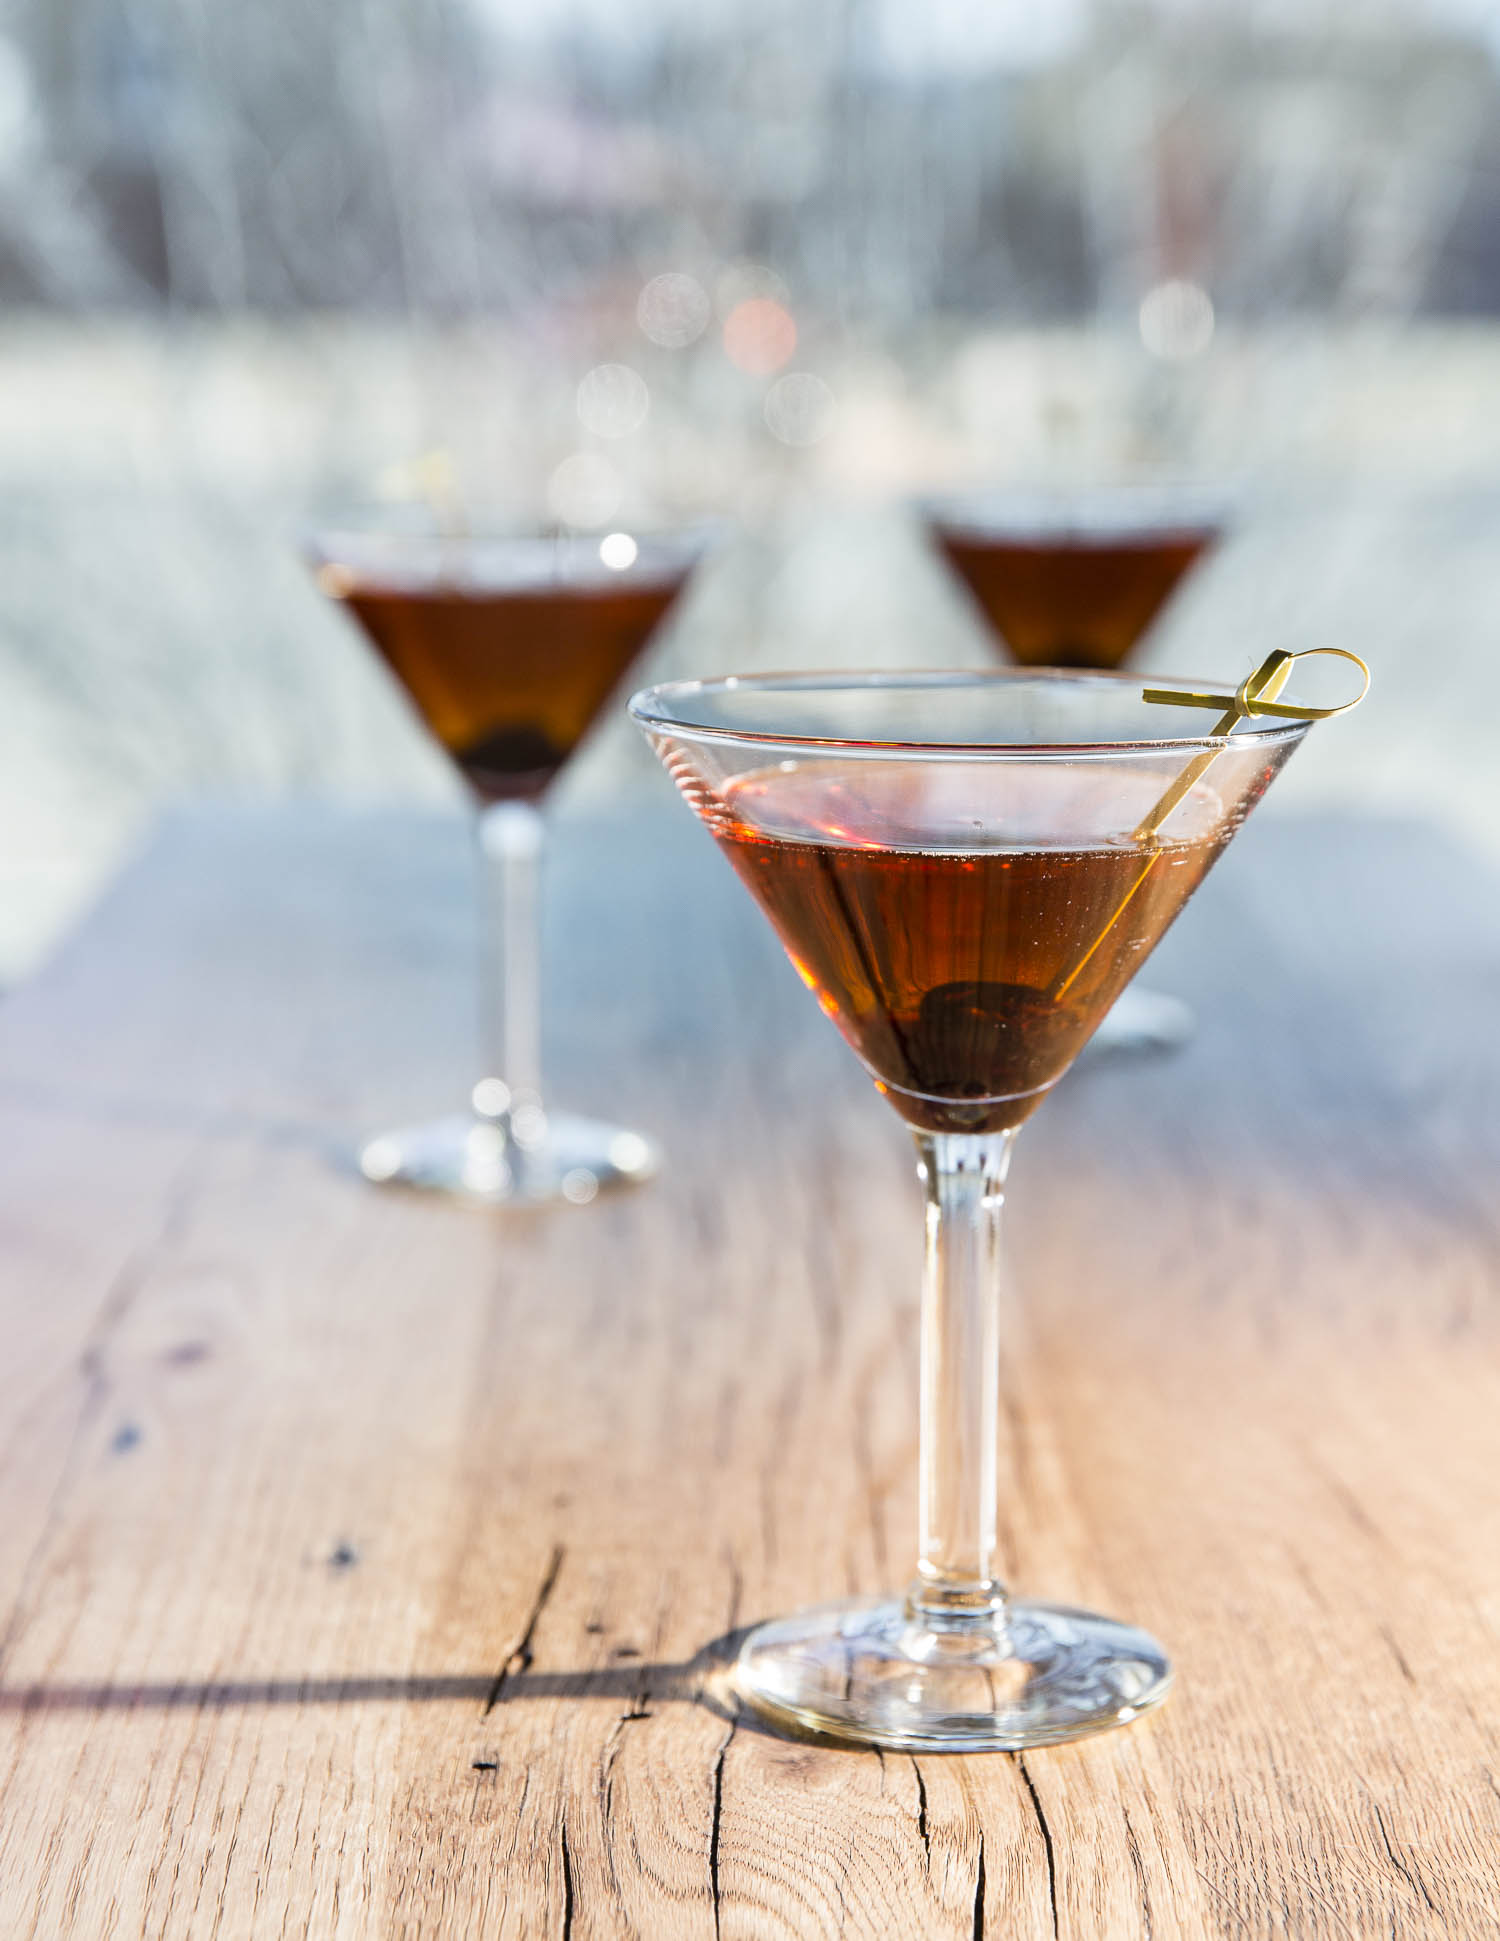 A smokey manhattan made with Colkegan Whiskey. Photos by Jen Judge.